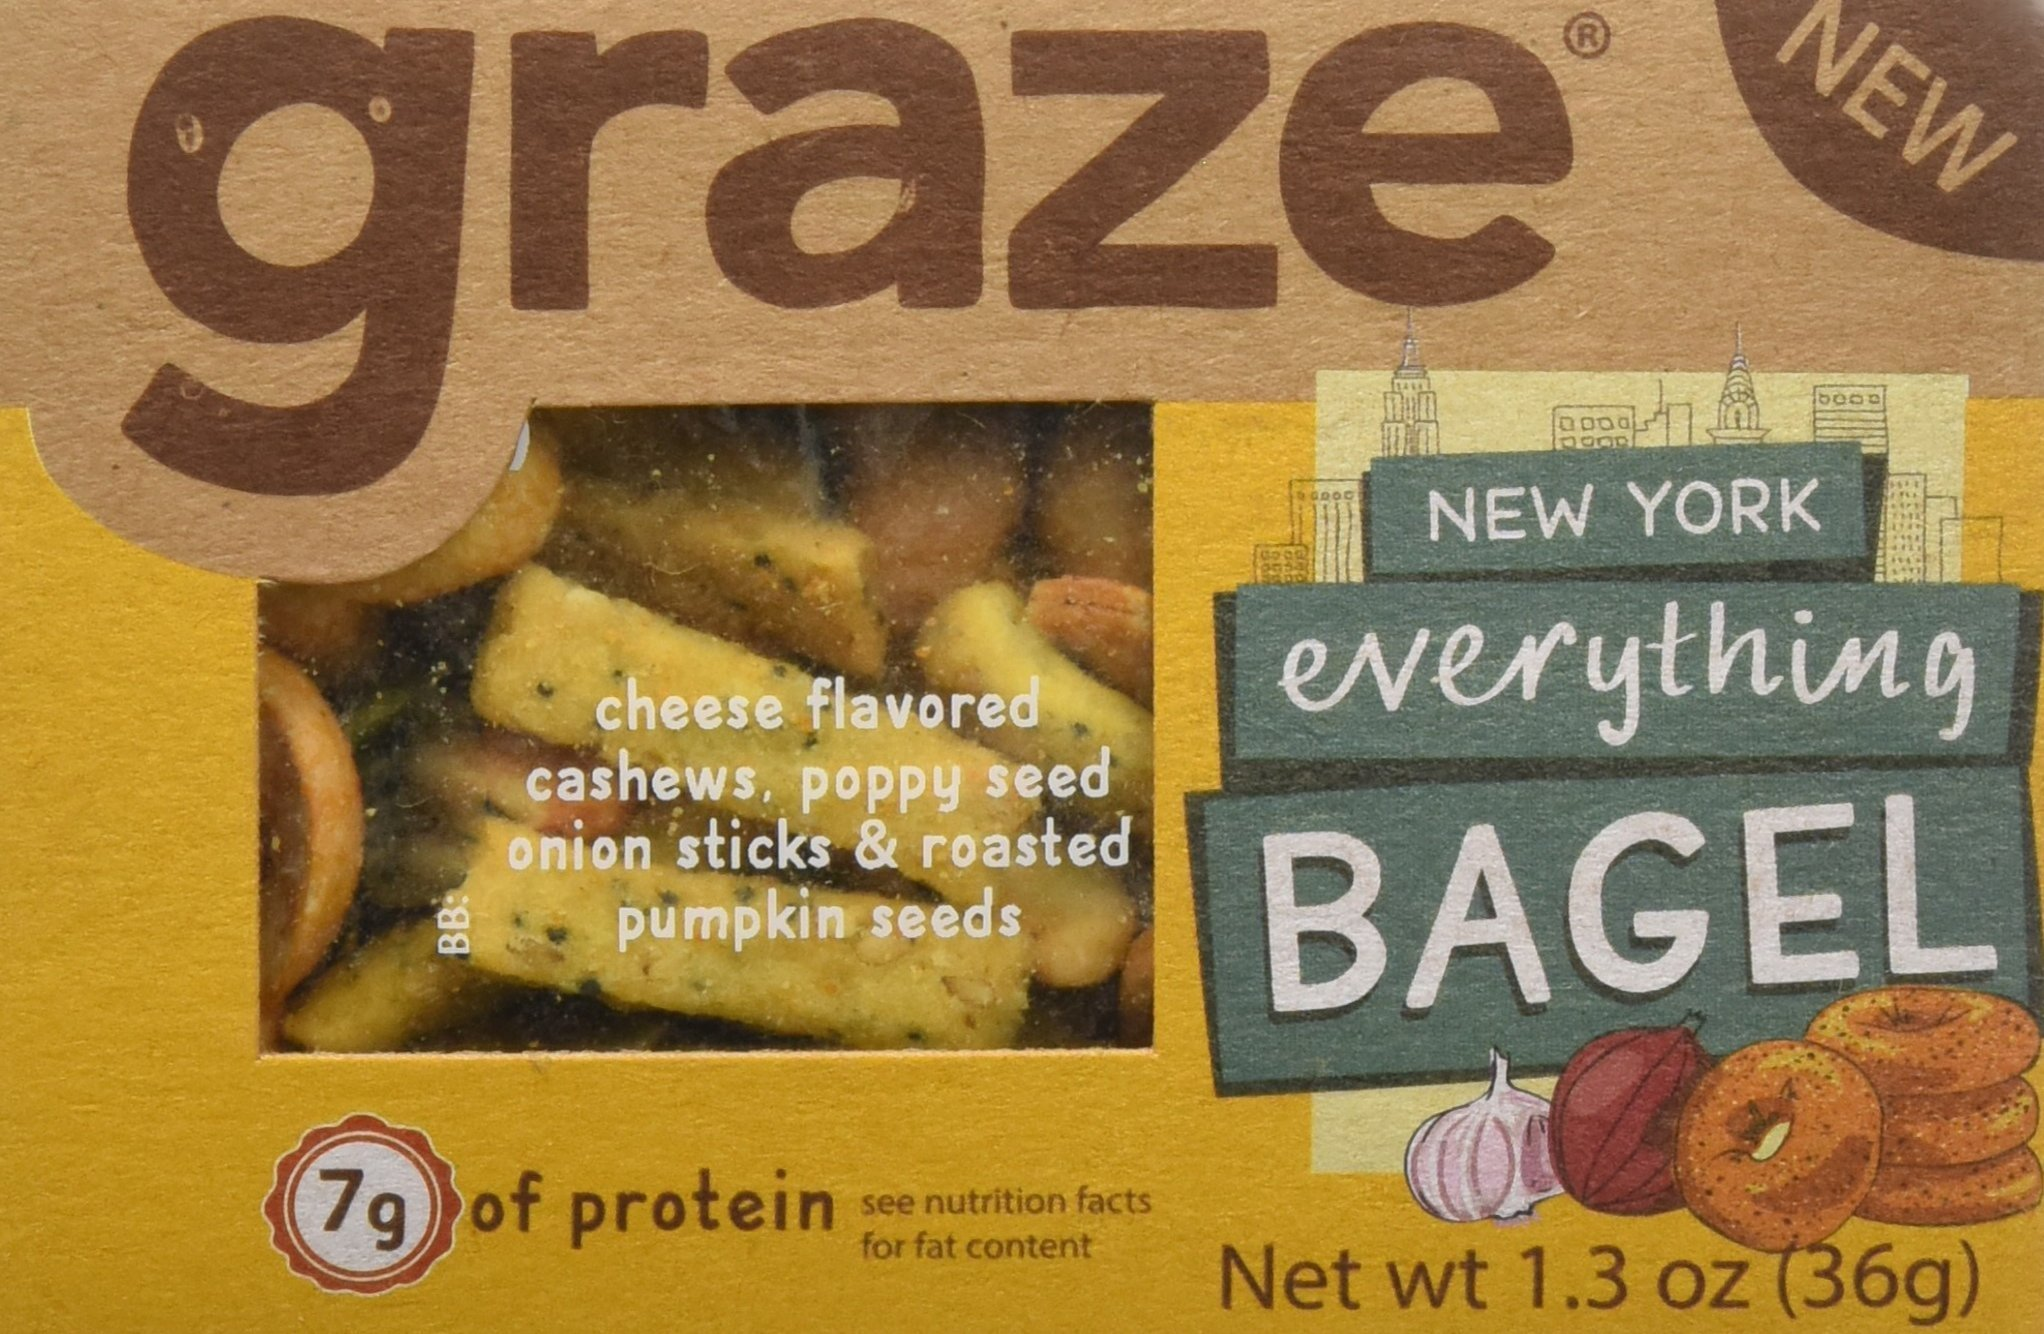 Graze Natural New York Everything Bagel Snack with Cheese Flavored Cashews, Poppy Seed Onion Sticks and Roasted Pumpkin Seeds, Tasty, Healthy, Natural Snack Mix, 1.3 Ounce Box, 9 Pack